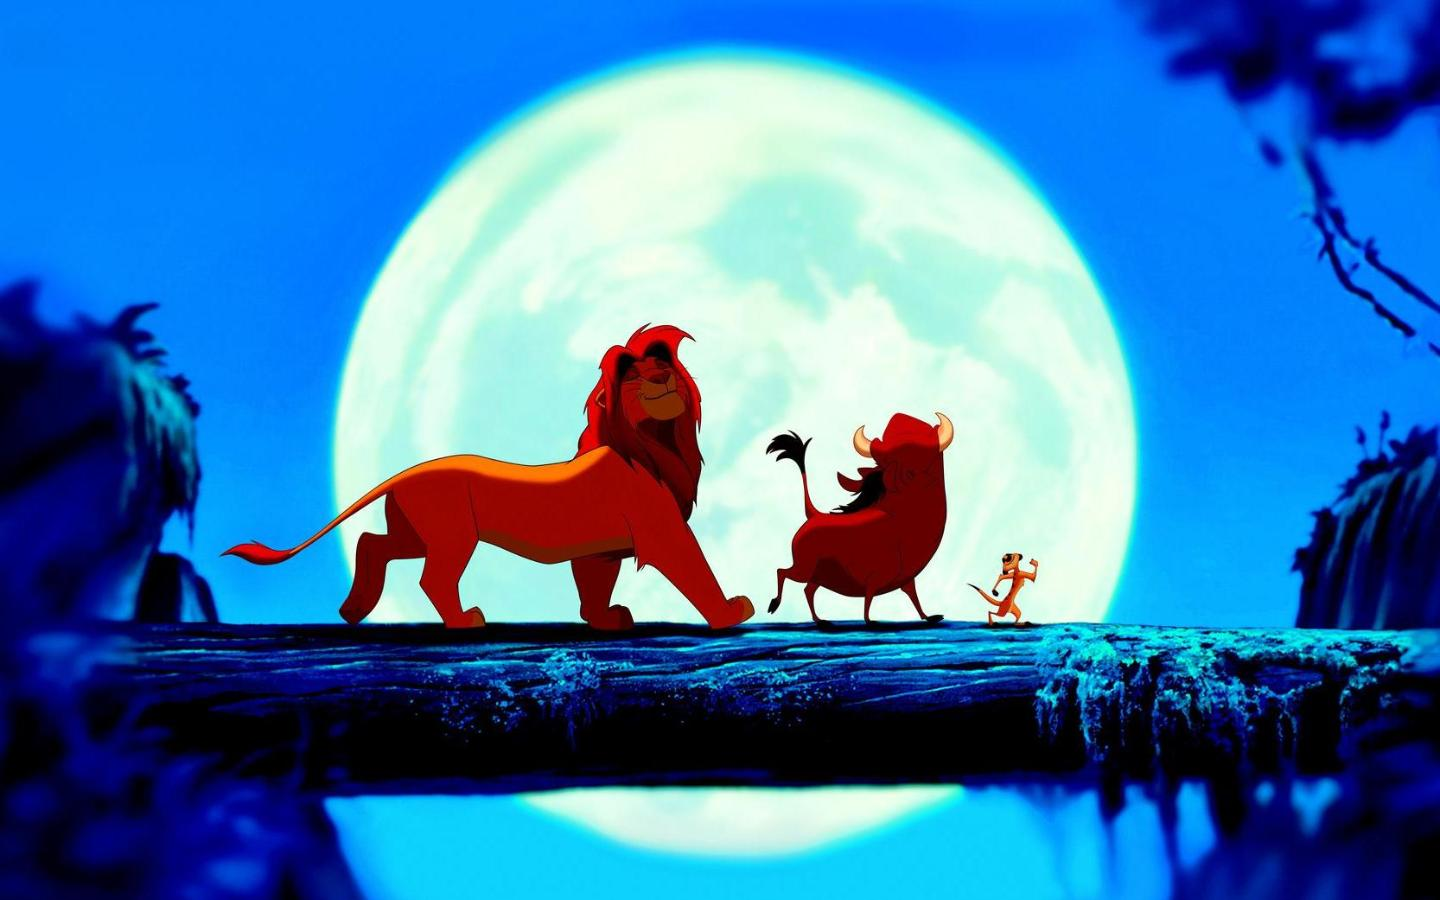 hakuna matata images lion king hd wallpaper and background photos